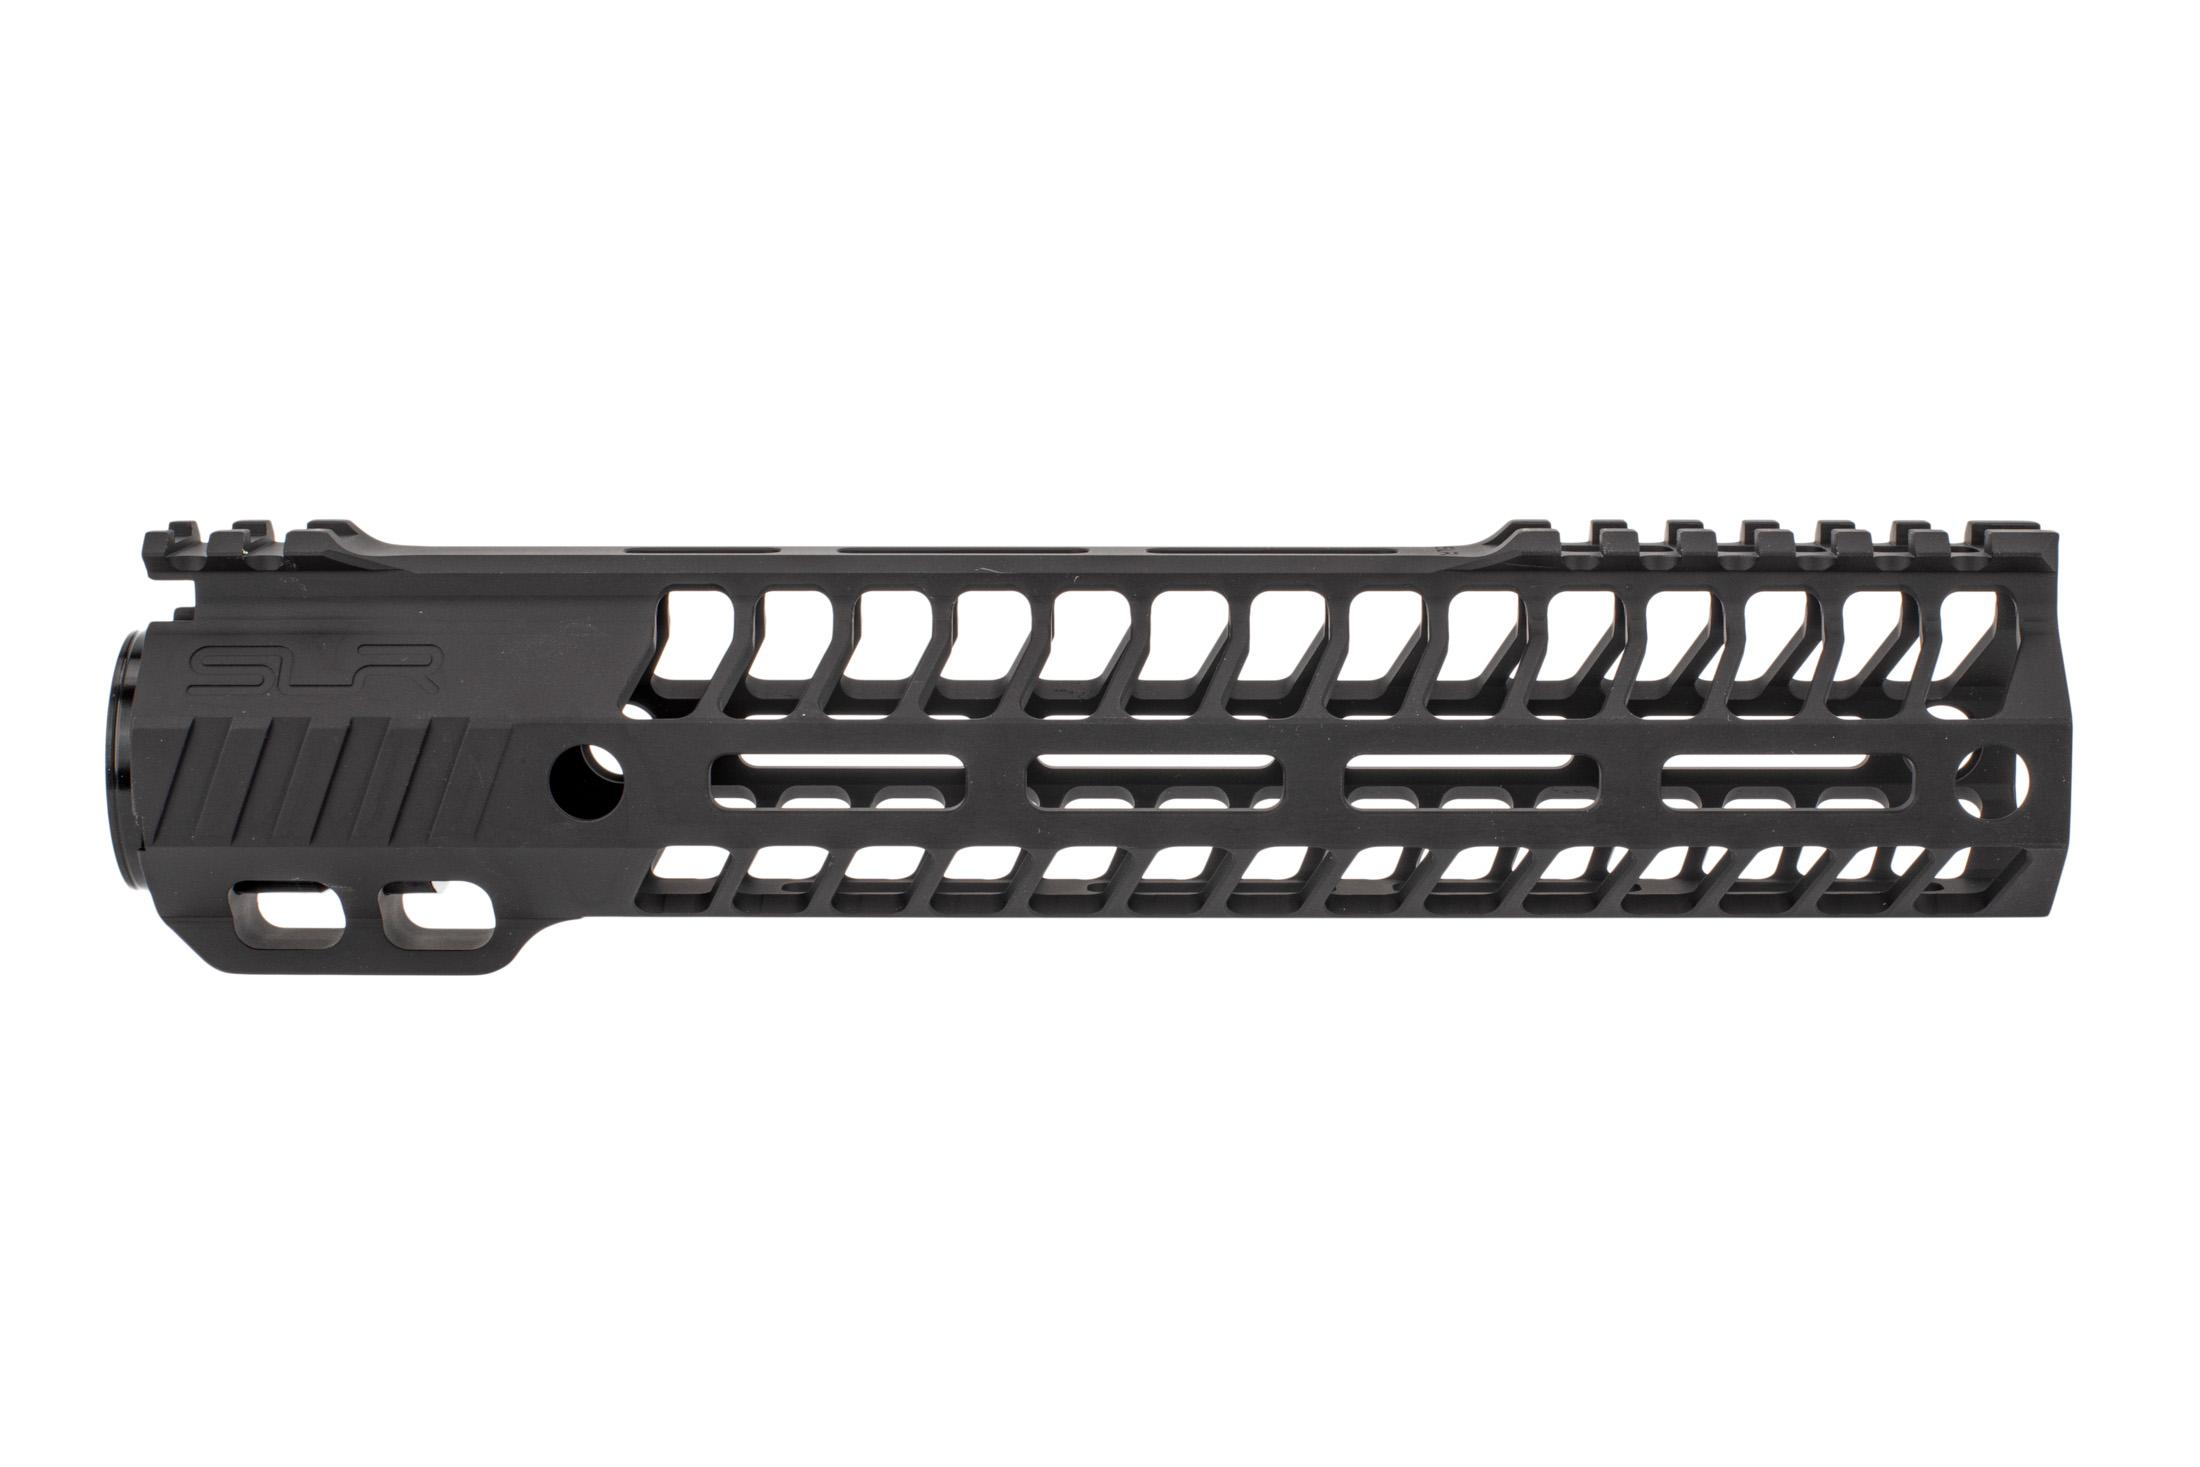 SLR Rifleworks 9.7 HELIX AR-15 handguard with full length top rail features M-LOK on four sides and a black finish